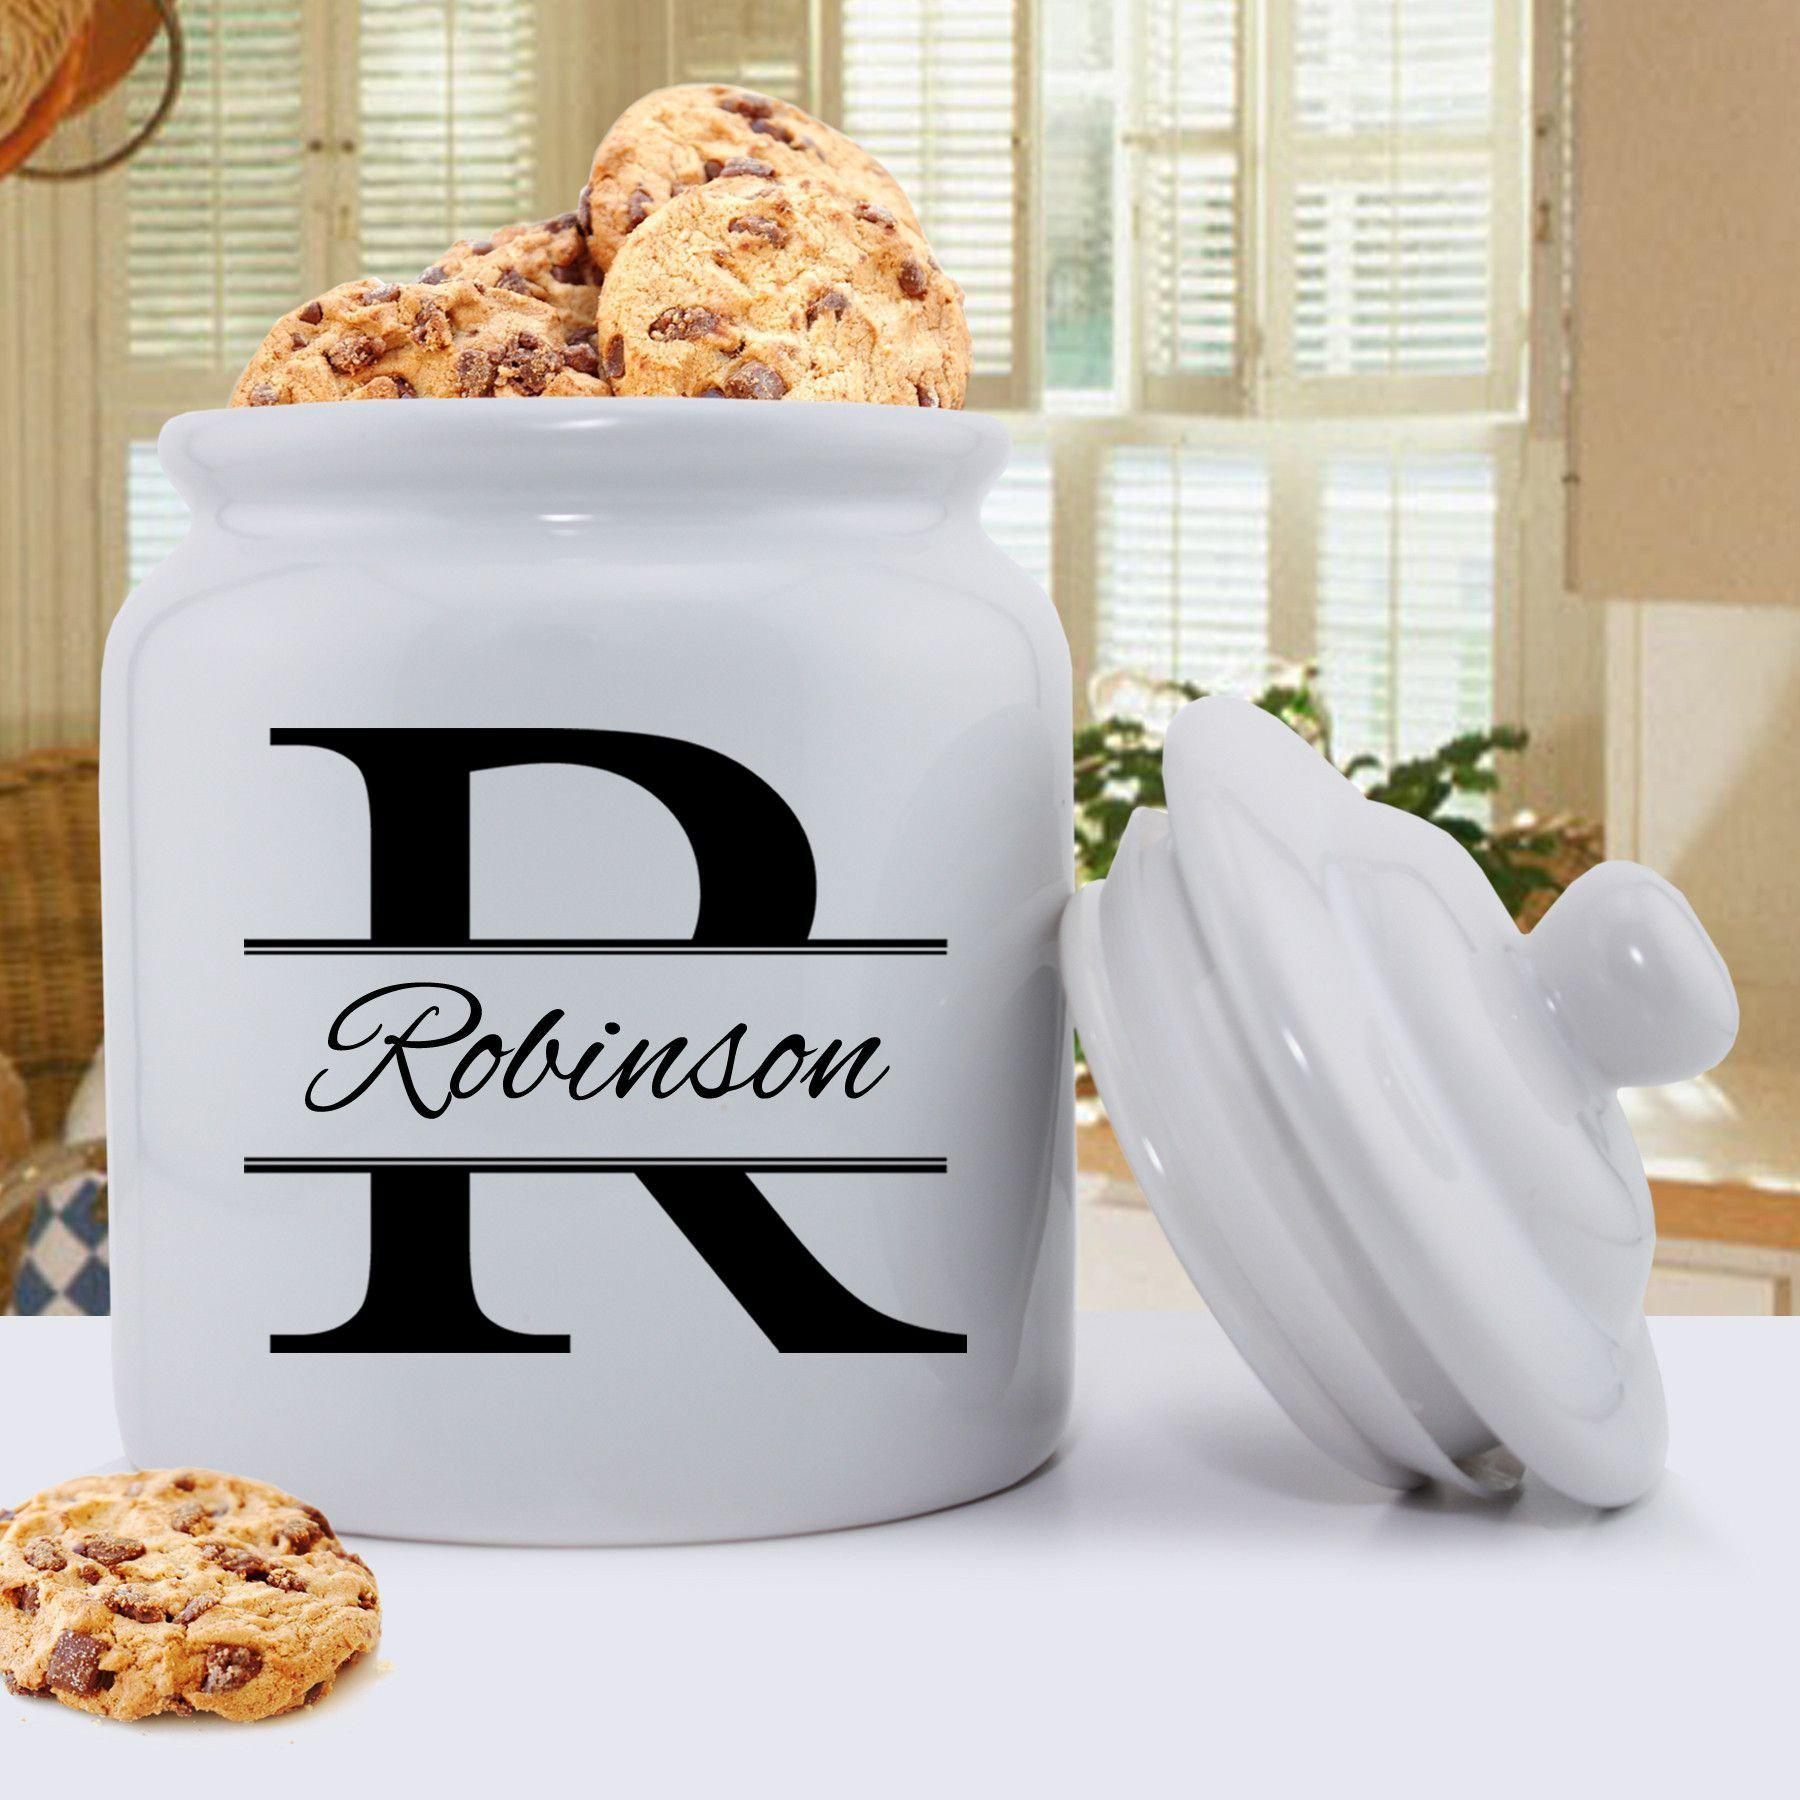 Personalized-Ceramic-Cookie-Jar-Stamped-Design